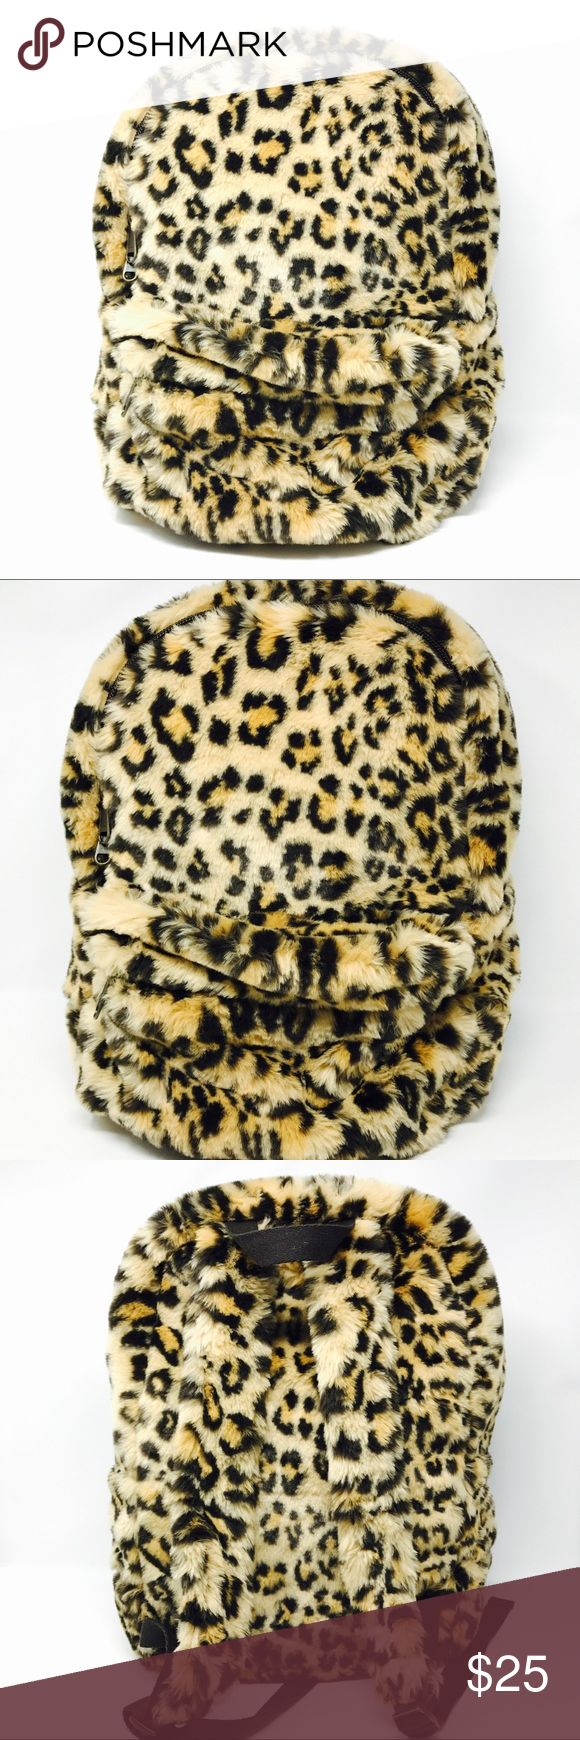 "Pottery Barn Teen Faux Leopard Fur Backpack Super cute pottery barn teen faux fur leopard print backpack! In amazing condition. Does have pen marks inside, but other then that the bag is in perfect shape. Perfect for every day or school. Super fun. Perfect for airports or class when it gets cold and you can cuddle up with your backpack and keep warm. 14""L x 6""W x 19""H pottery barn teen Bags Backpacks"